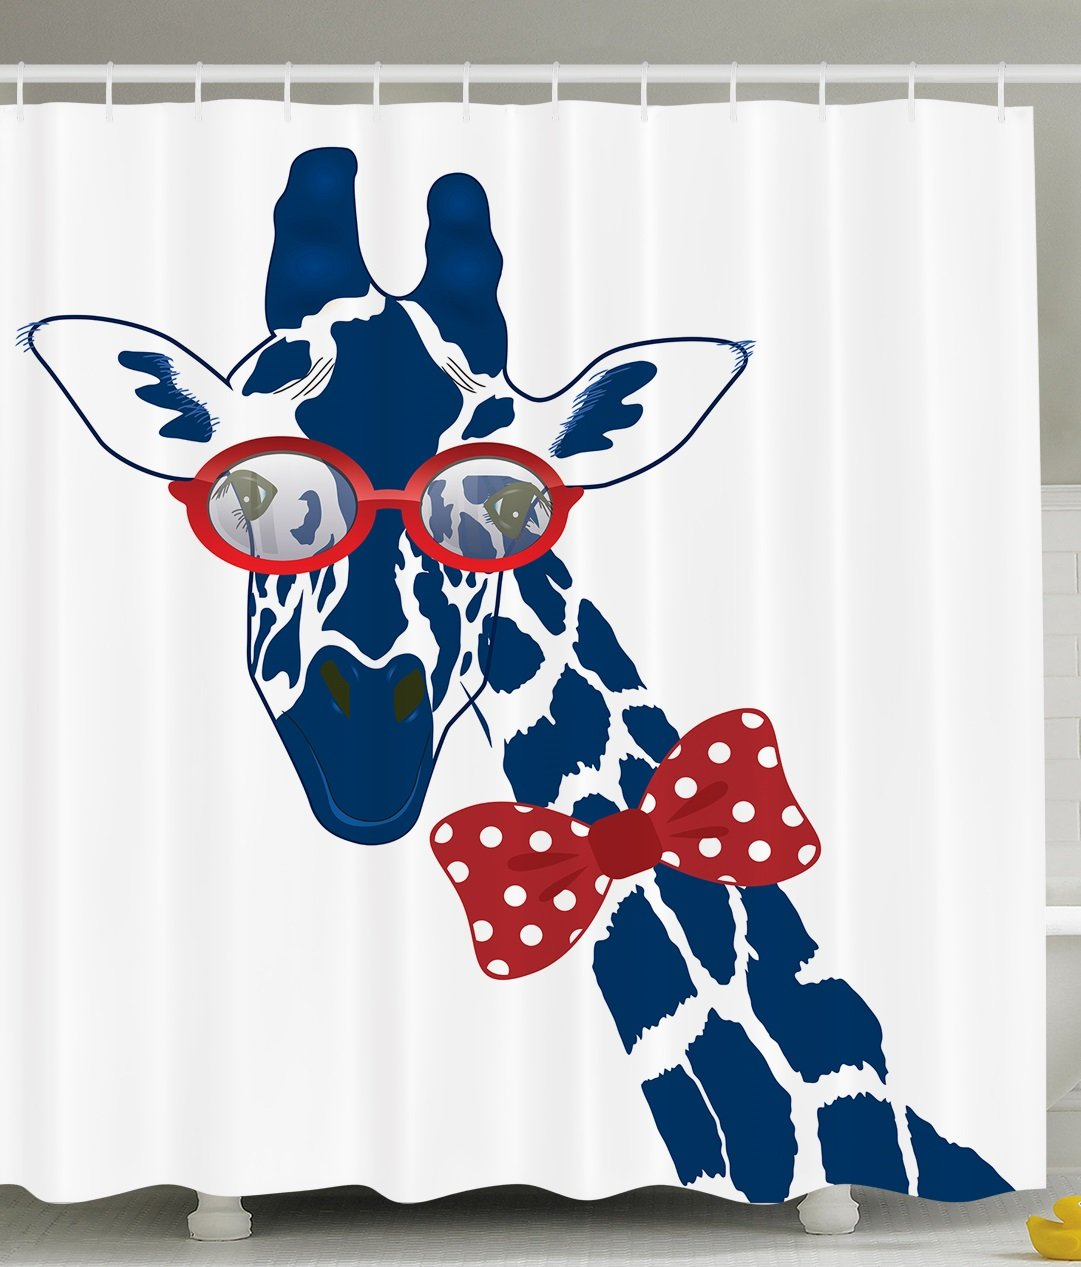 Red White And Blue Shower Curtain.  Whimsical Funny Giraffe Wearing Hipster Sunglasses and Bowtie Polyester Fabric Bathroom Shower Curtain Set with Hooks Navy Red White Home Kitchen Amazon com Wildlife Animal Decor by